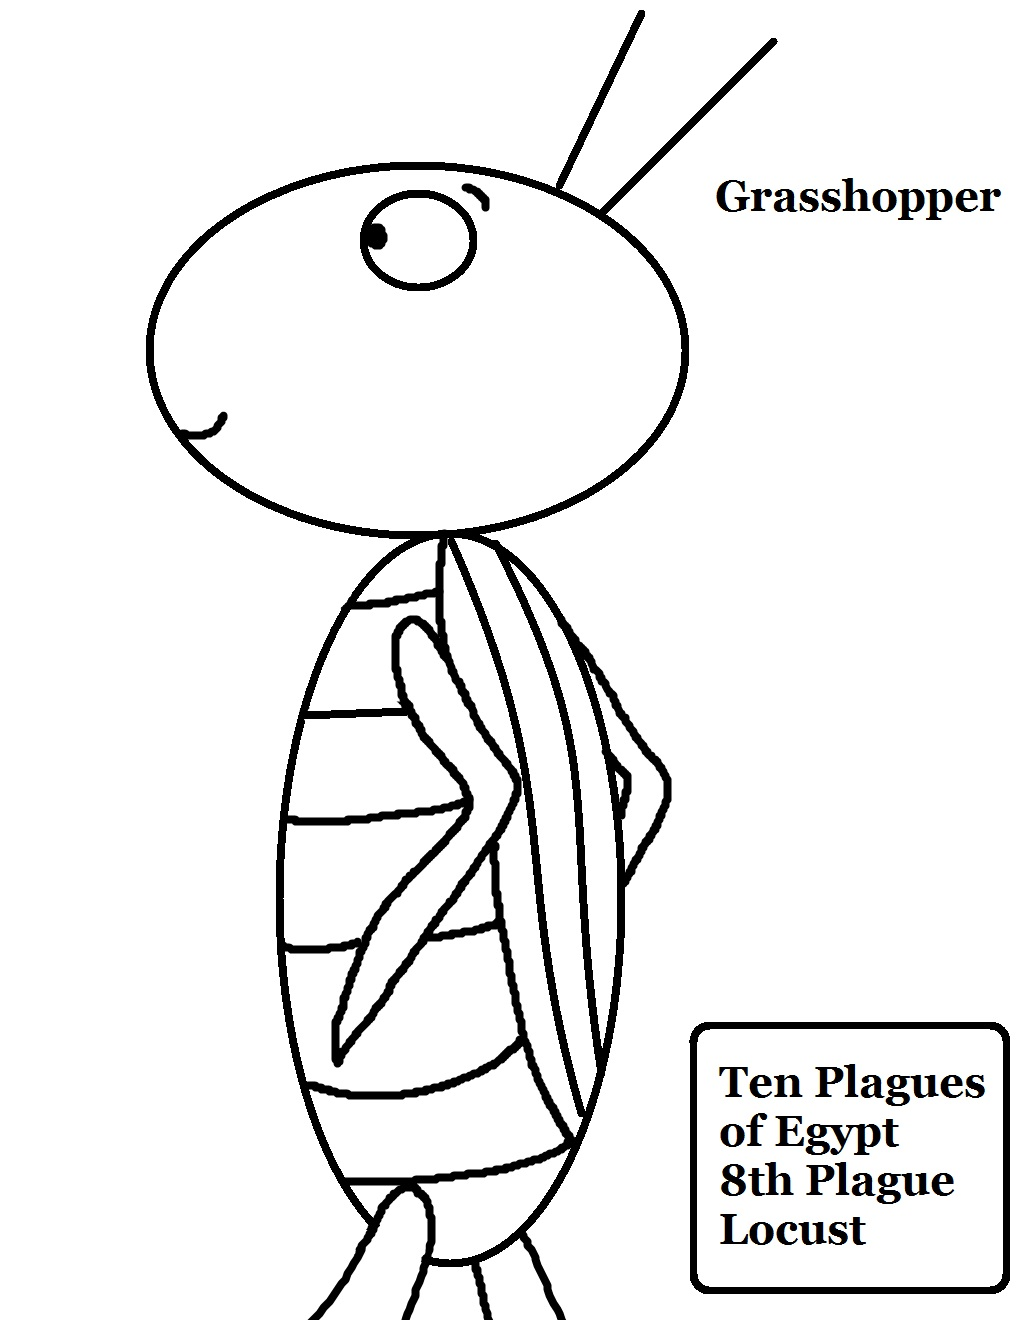 10 plagues of egypt locust lesson for Ten plagues of egypt coloring pages